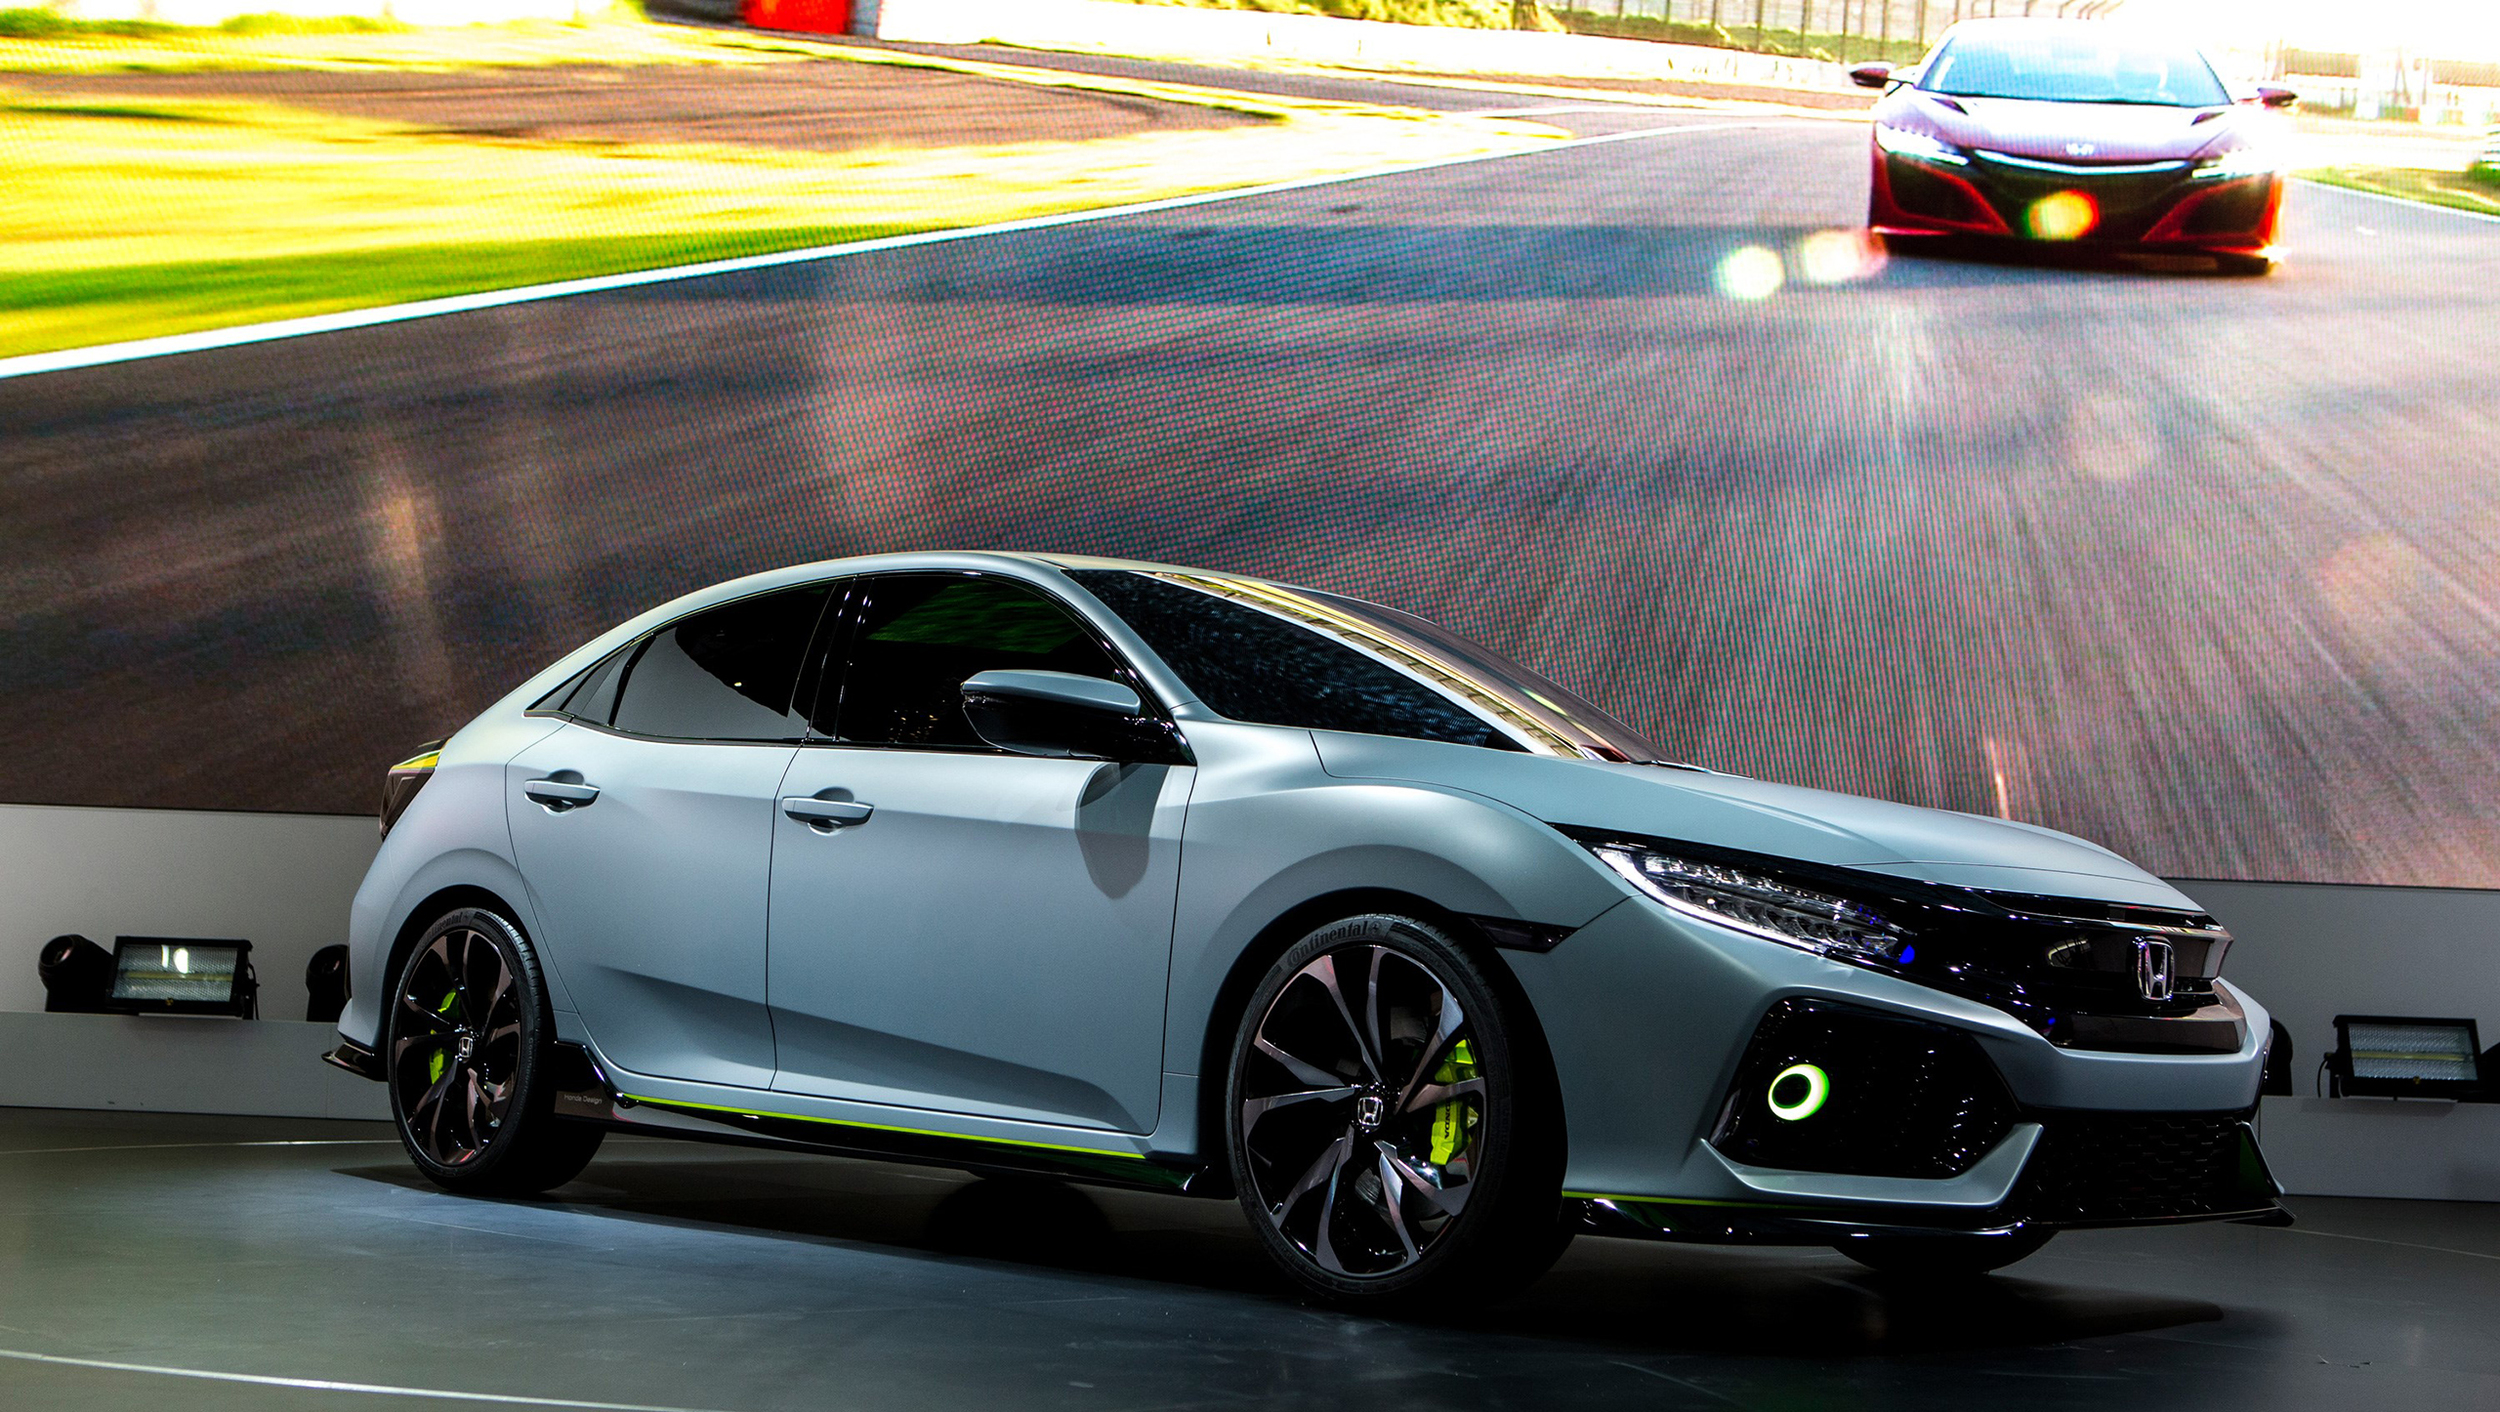 71933_Civic_Hatchback_Prototype_at_Geneva_Motor_Show_2016.jpg